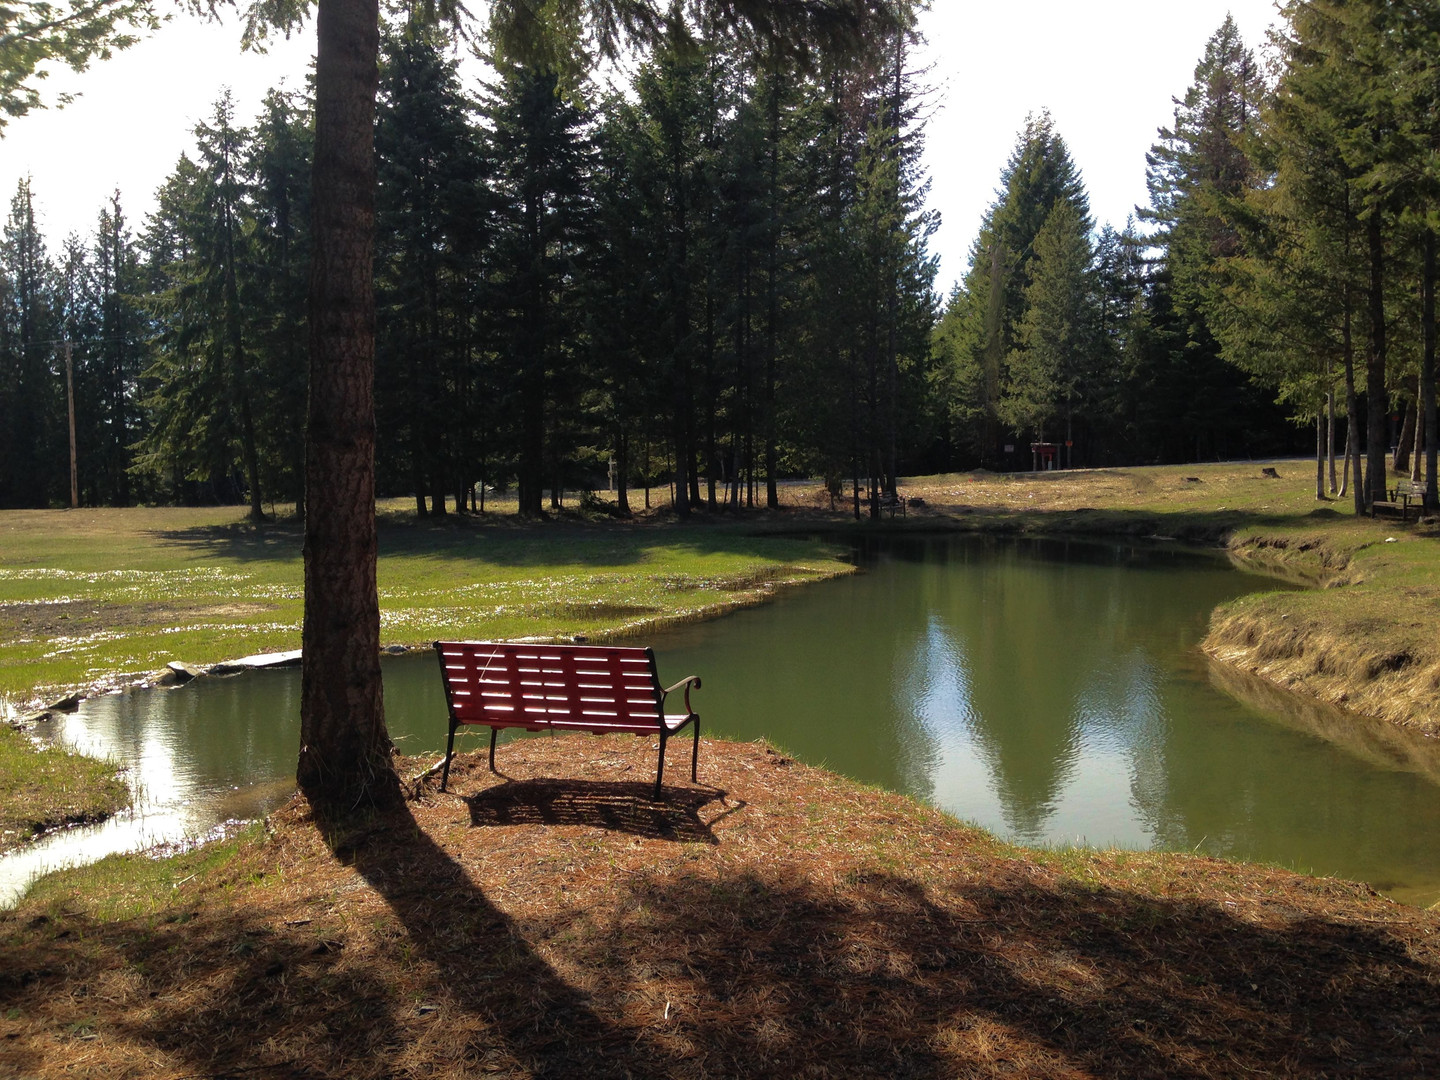 Picturesque pond in meadow at Creek Bridge Meadow wedding venue in Careywood Idaho.